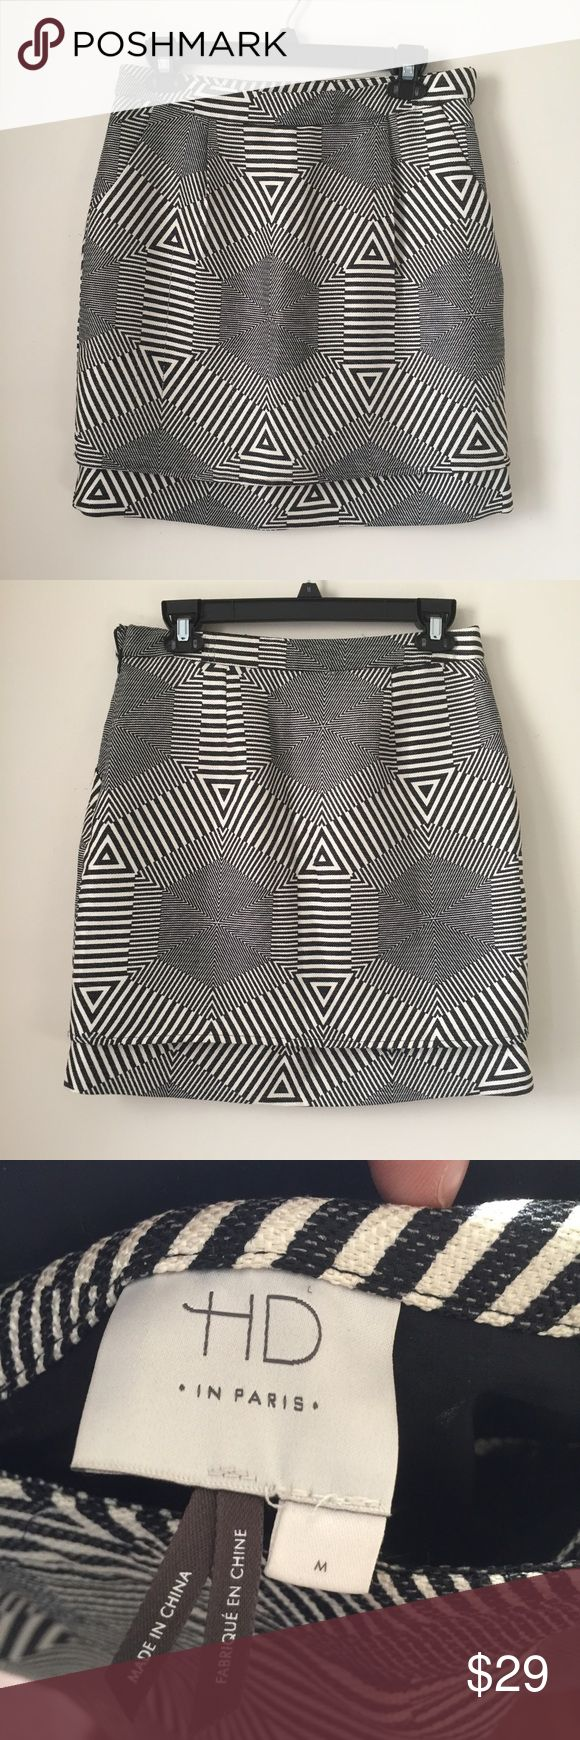 HD in Paris Black & White Geomaze Skirt Medium HD in Paris black and white geomaze skirt featuring double-layer bottom hem, front pockets(!), and side zip. Polyester with poly/spandex lining. Size medium.  There is a snag in the fabric as shown in the photos but the print is so busy that it makes it less noticeable. Otherwise great condition. Anthropologie Skirts Mini